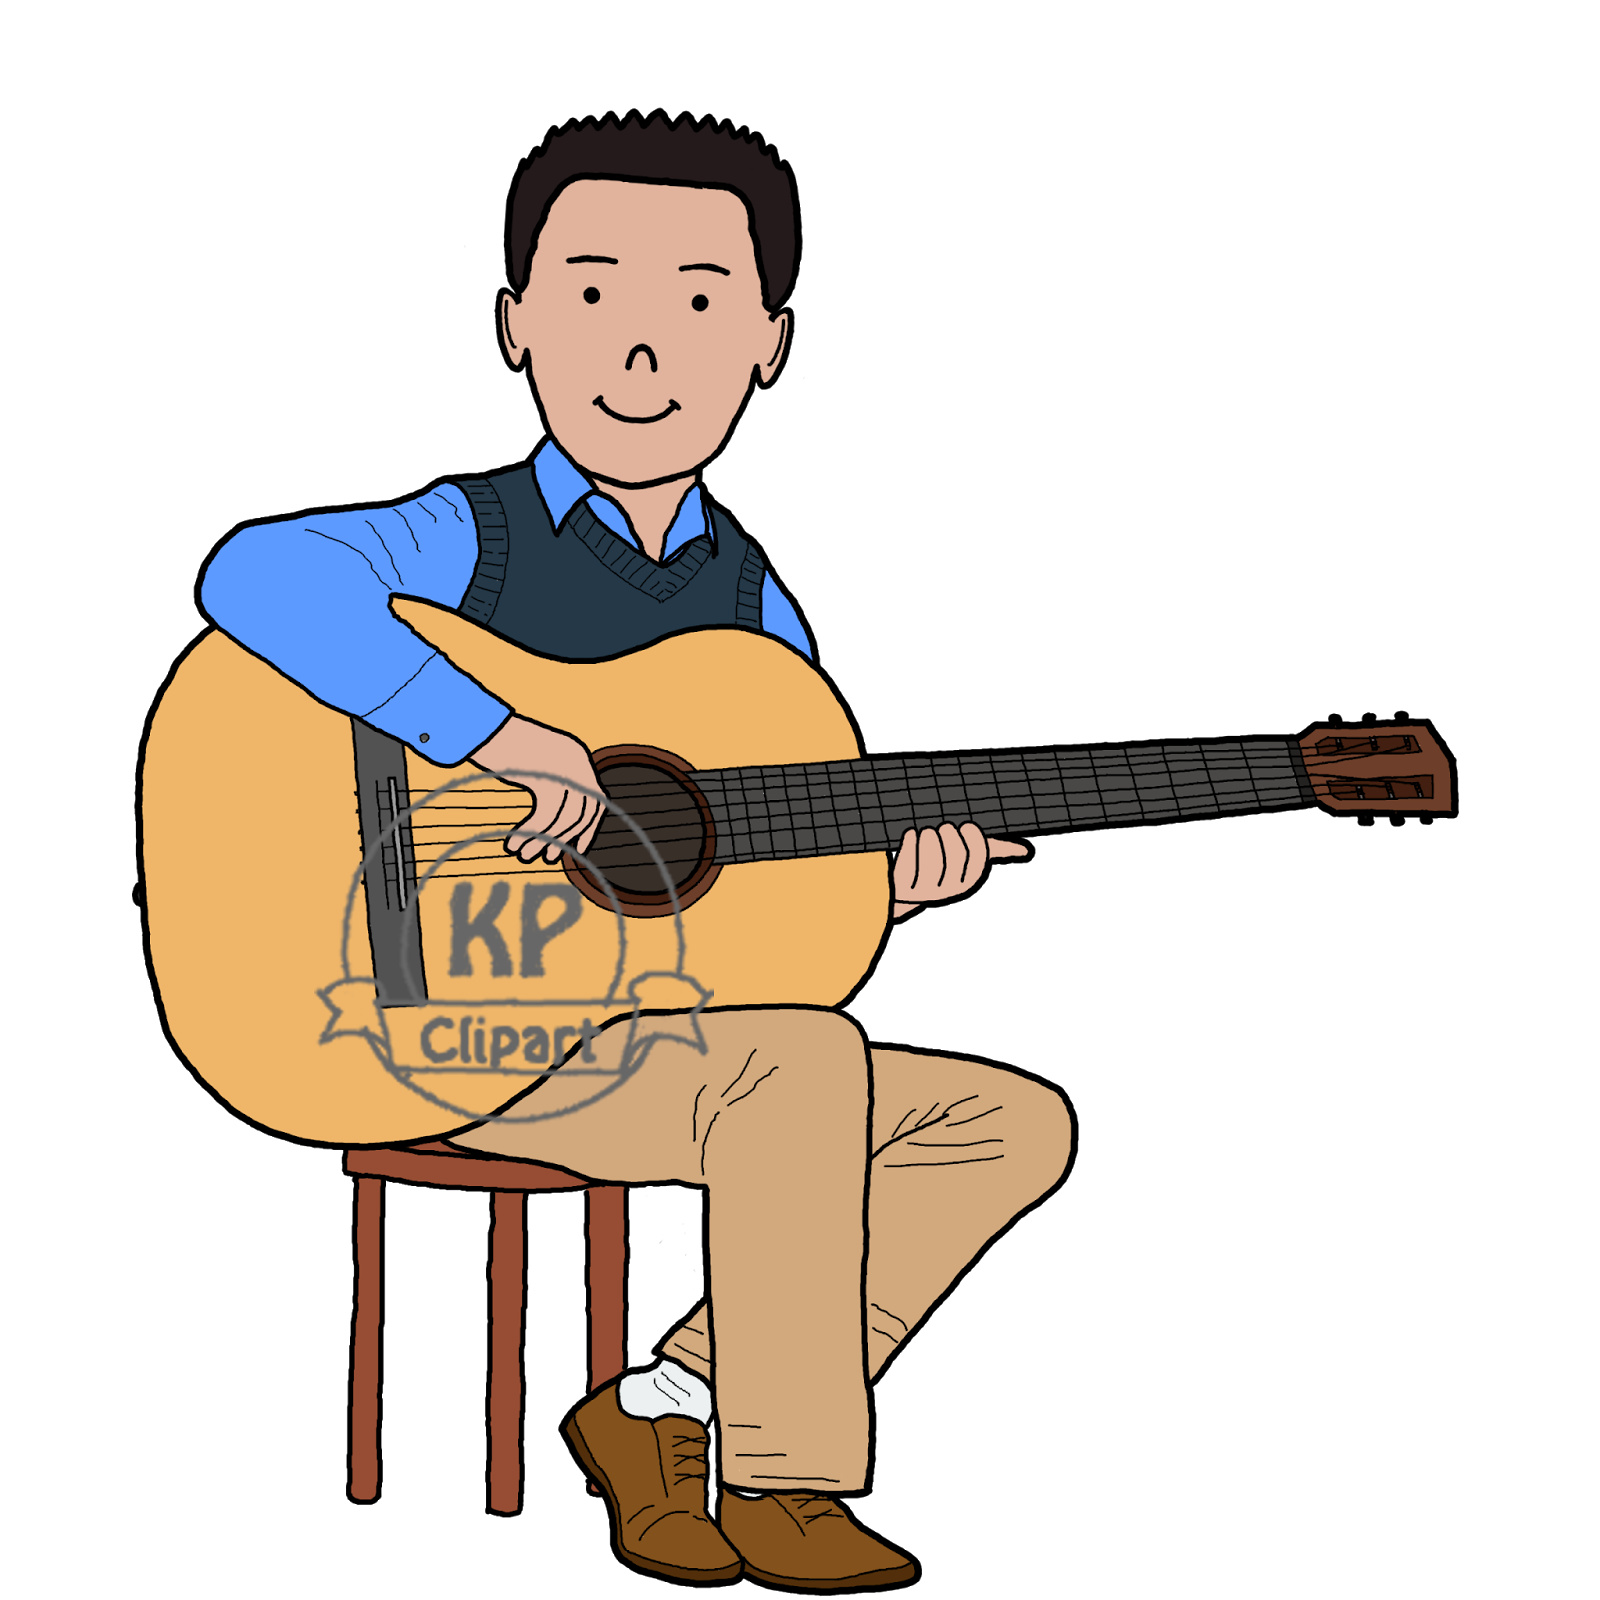 KP Clipart: Friends Playing Music.